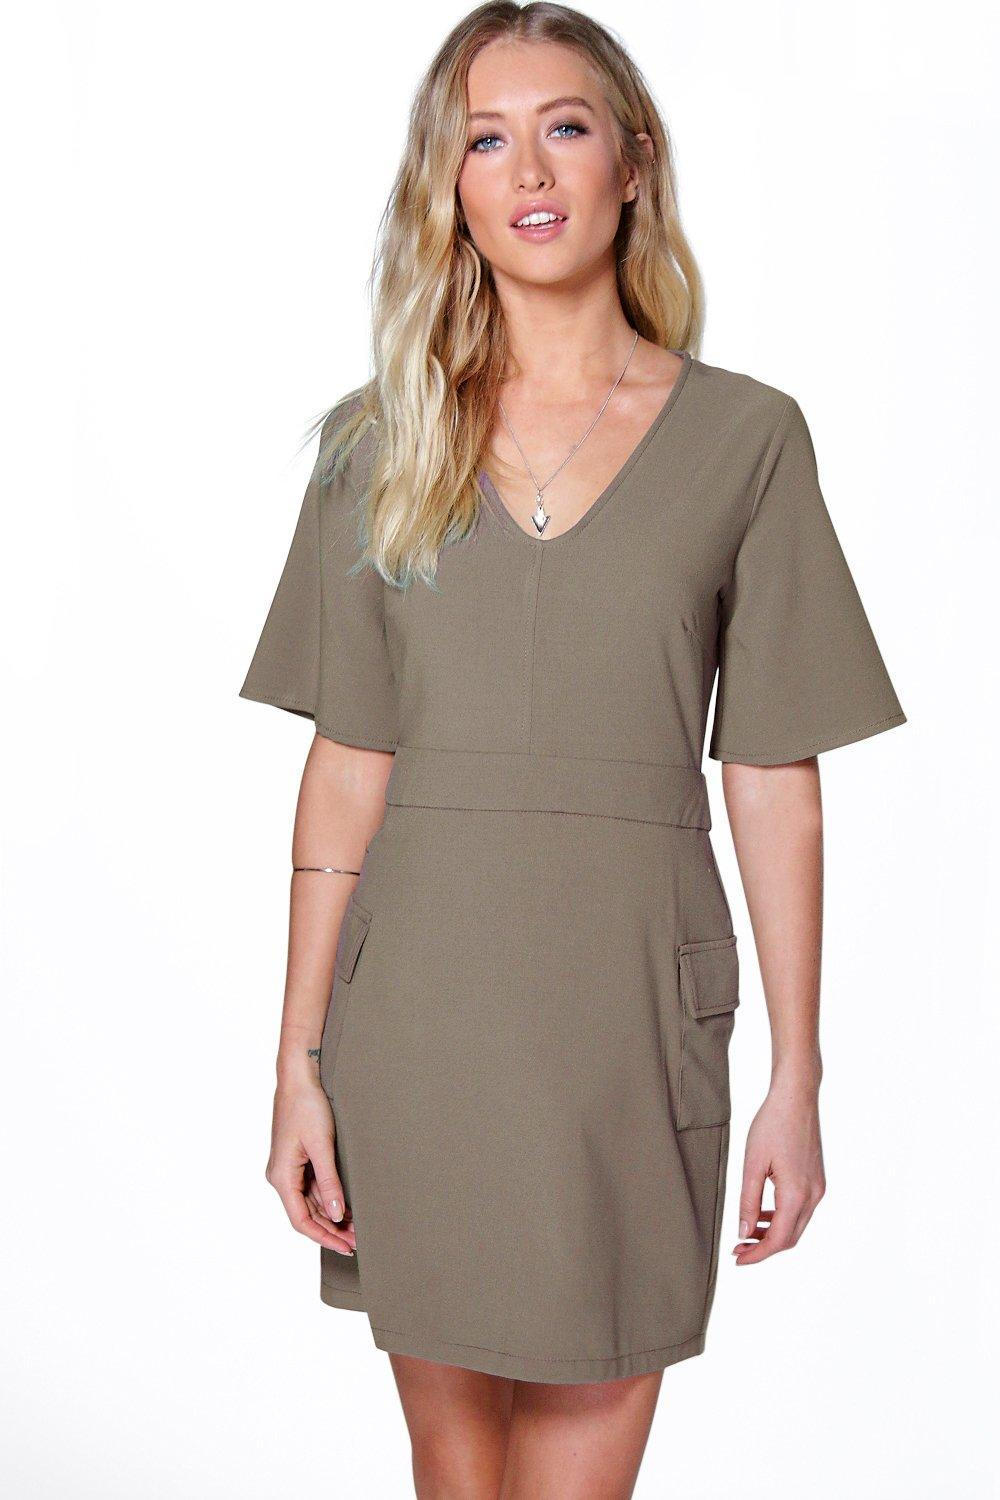 A Line Skater Pocket Dress Khaki - style: a-line; length: mid thigh; neckline: v-neck; sleeve style: angel/waterfall; pattern: plain; predominant colour: taupe; occasions: casual, creative work; fit: soft a-line; fibres: cotton - mix; sleeve length: half sleeve; pattern type: fabric; texture group: jersey - stretchy/drapey; season: s/s 2016; wardrobe: basic